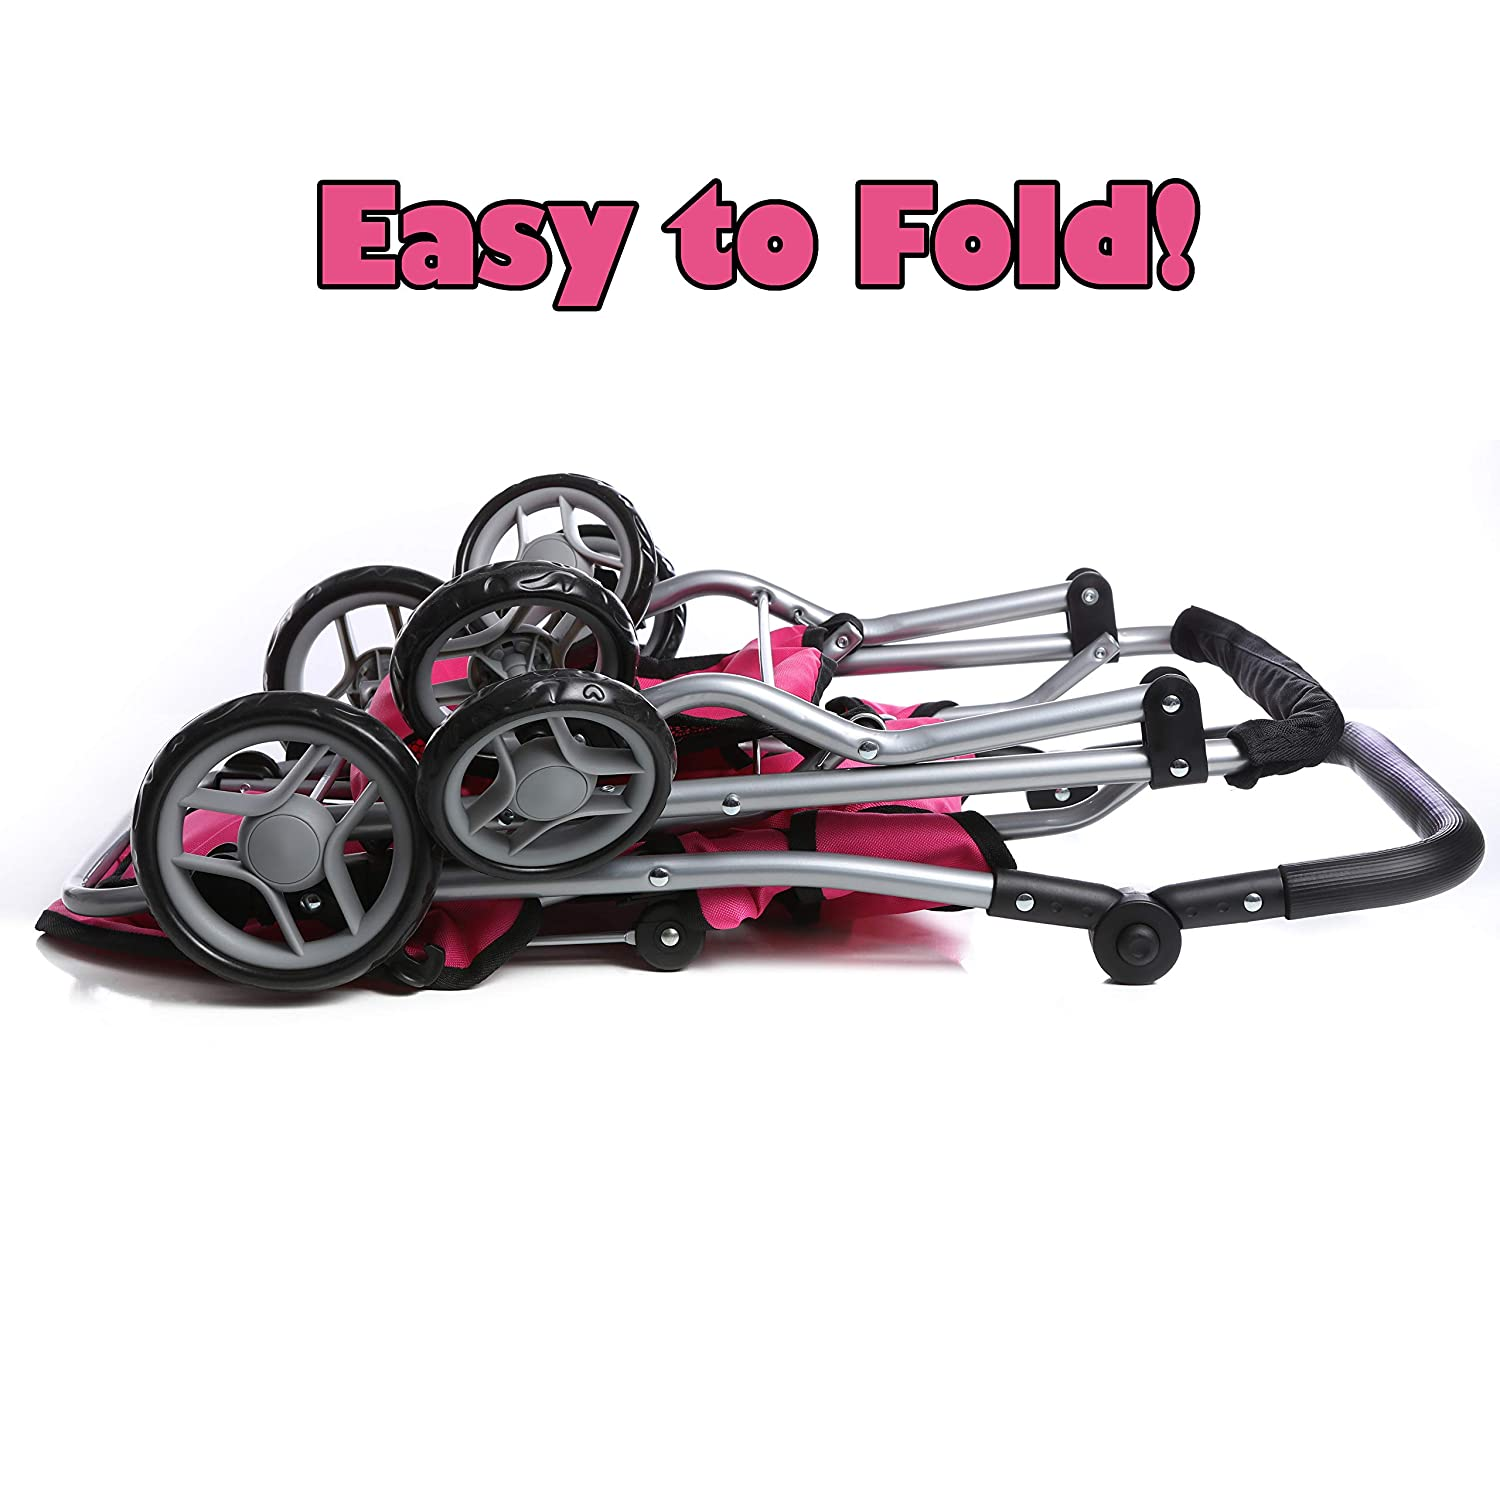 Basket Adjustable Handle 9668 /& Free Carriage Bag Mommy /& Me TWIN Doll Pram Back to Back Foldable Doll Stroller with Swiveling Wheels